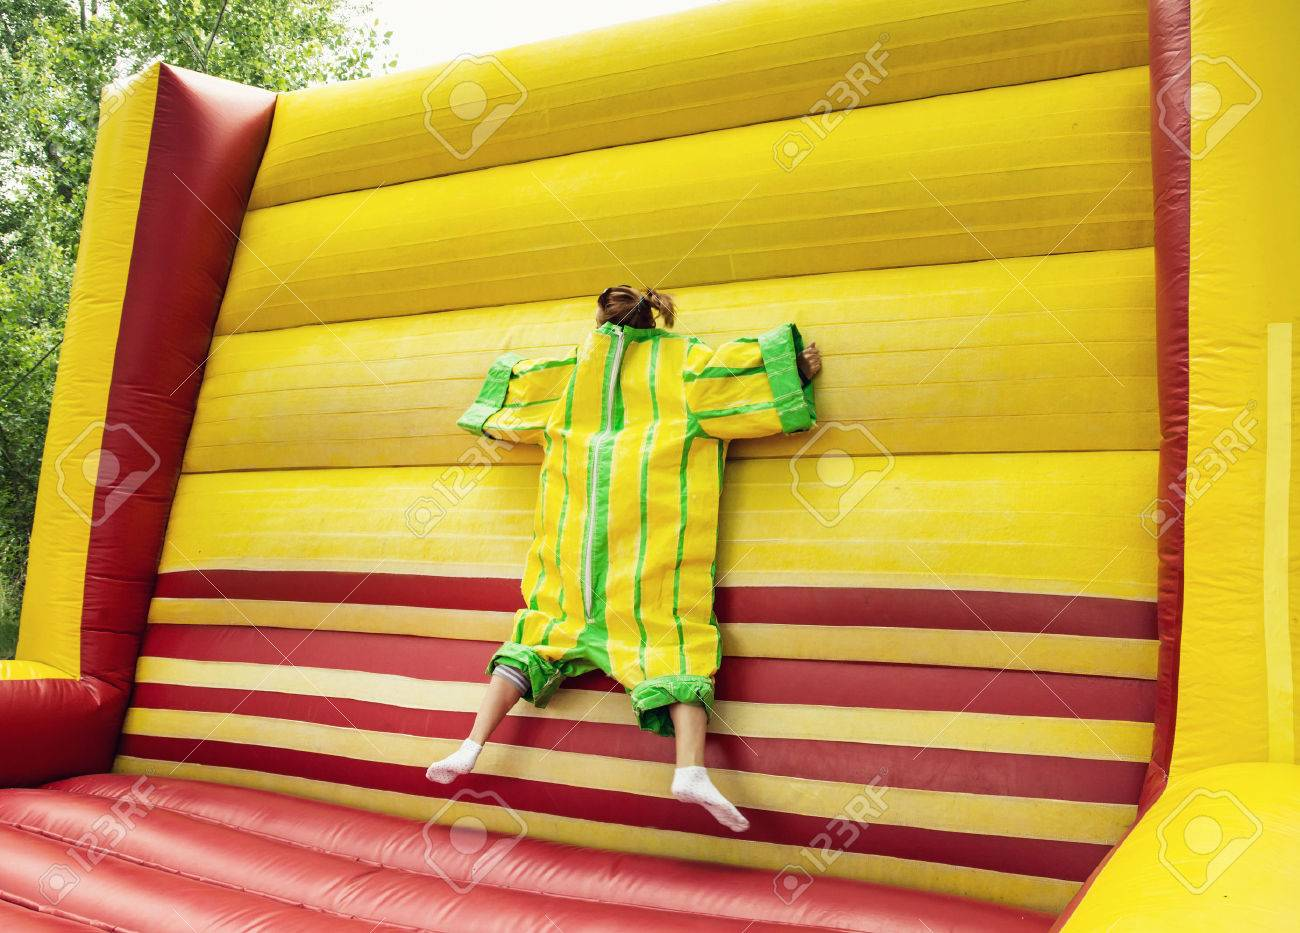 Young woman in plastic dress in a bouncy castle imitates a fly on velcro wall. Inflatable attraction. Leisure activity. - 53541227